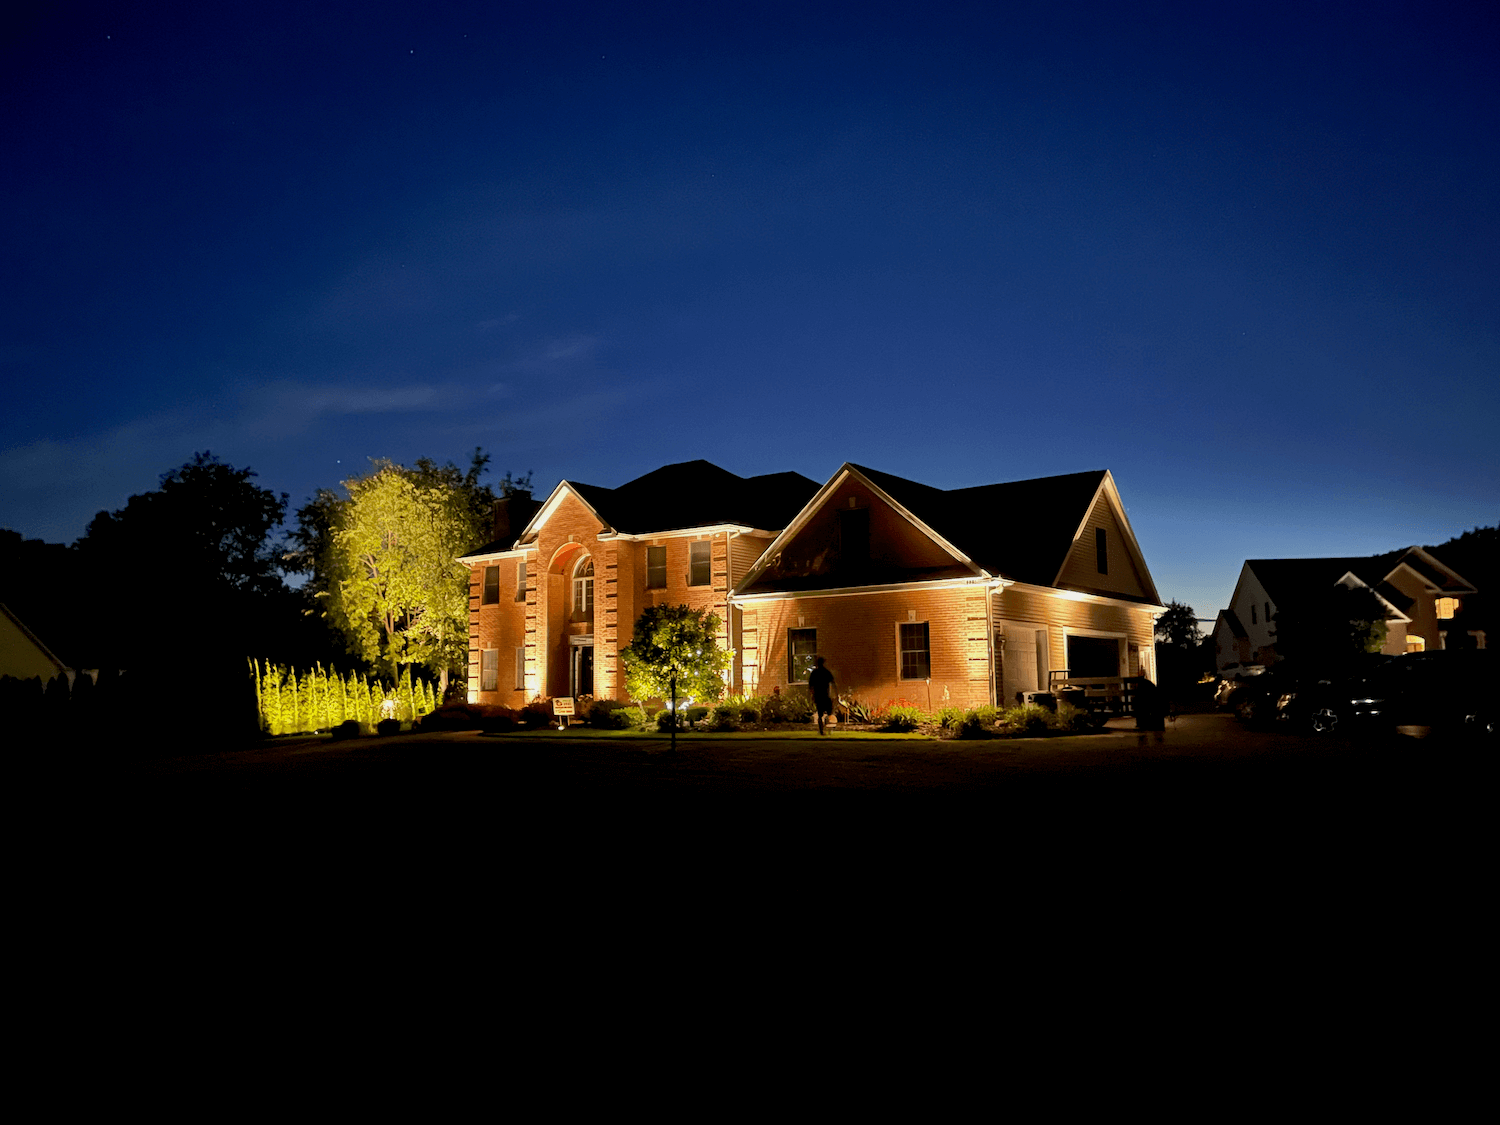 Outdoor house lighting to stand out from the neighborhood with curb appeal